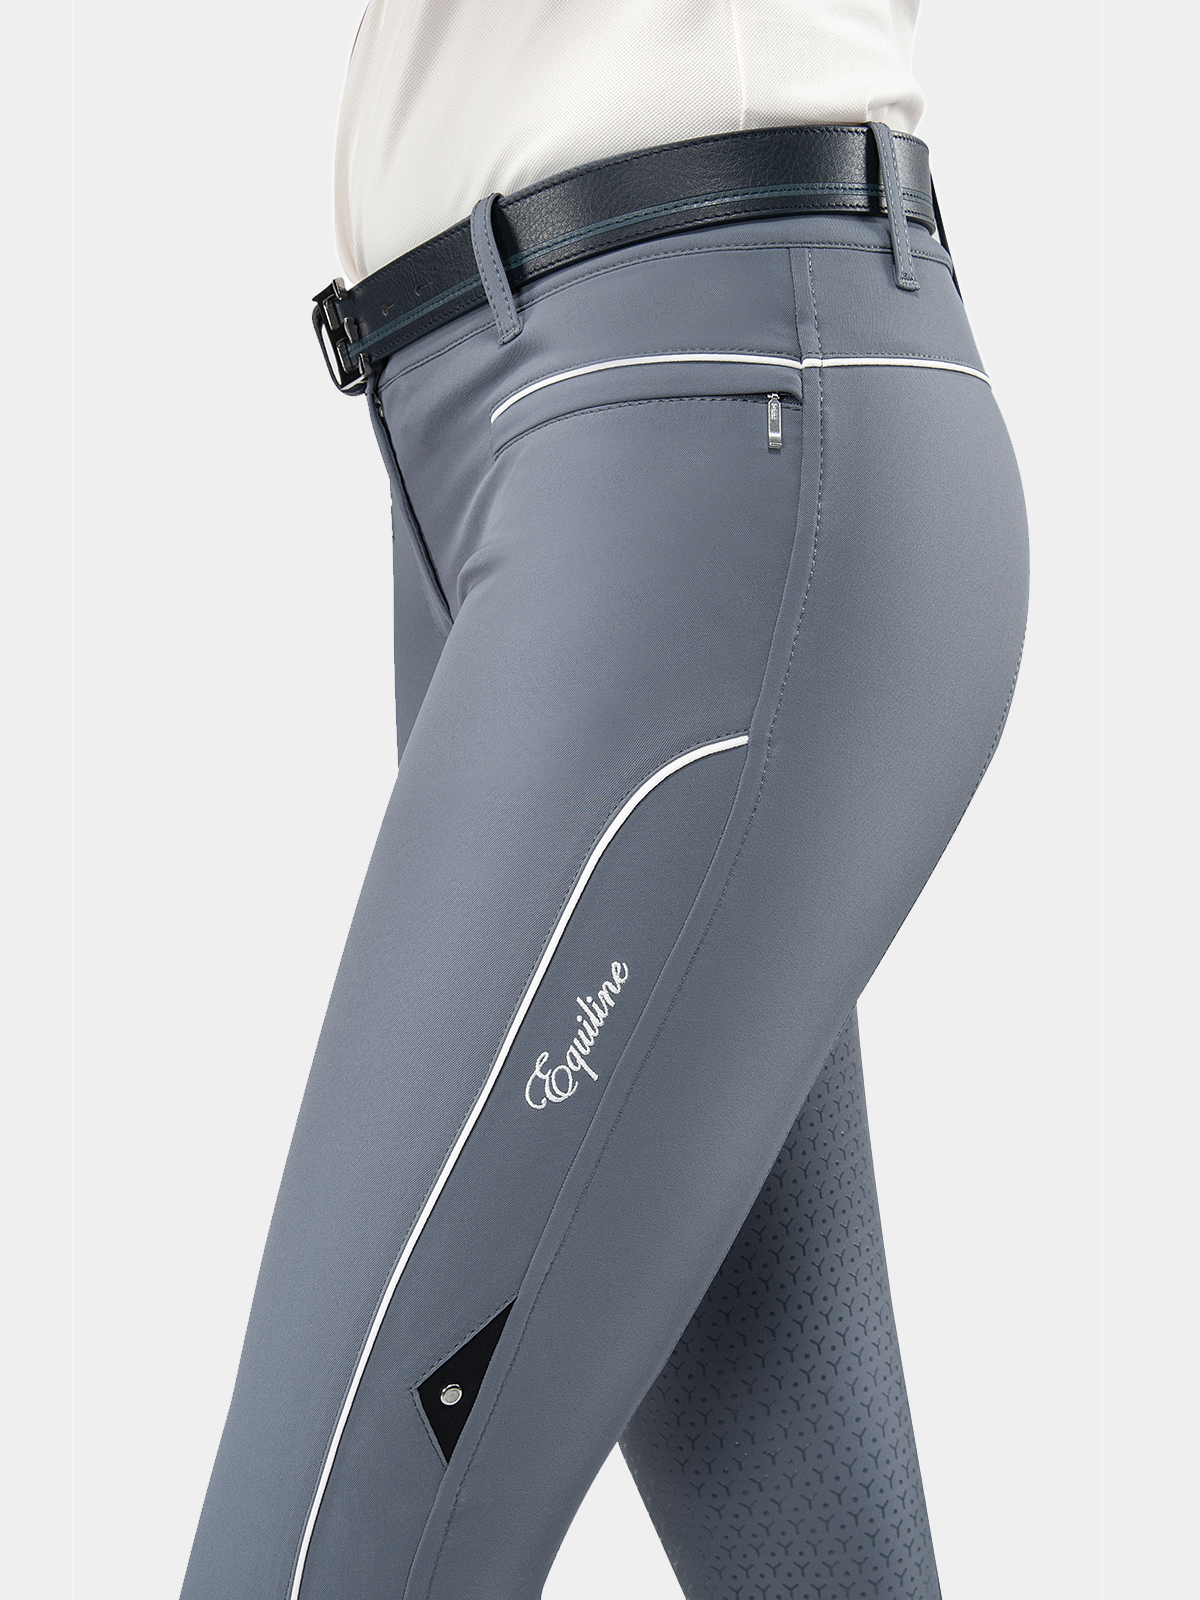 EILISE WOMEN'S FULL SEAT BREECHES WITH GRIP IN B-MOVE 2